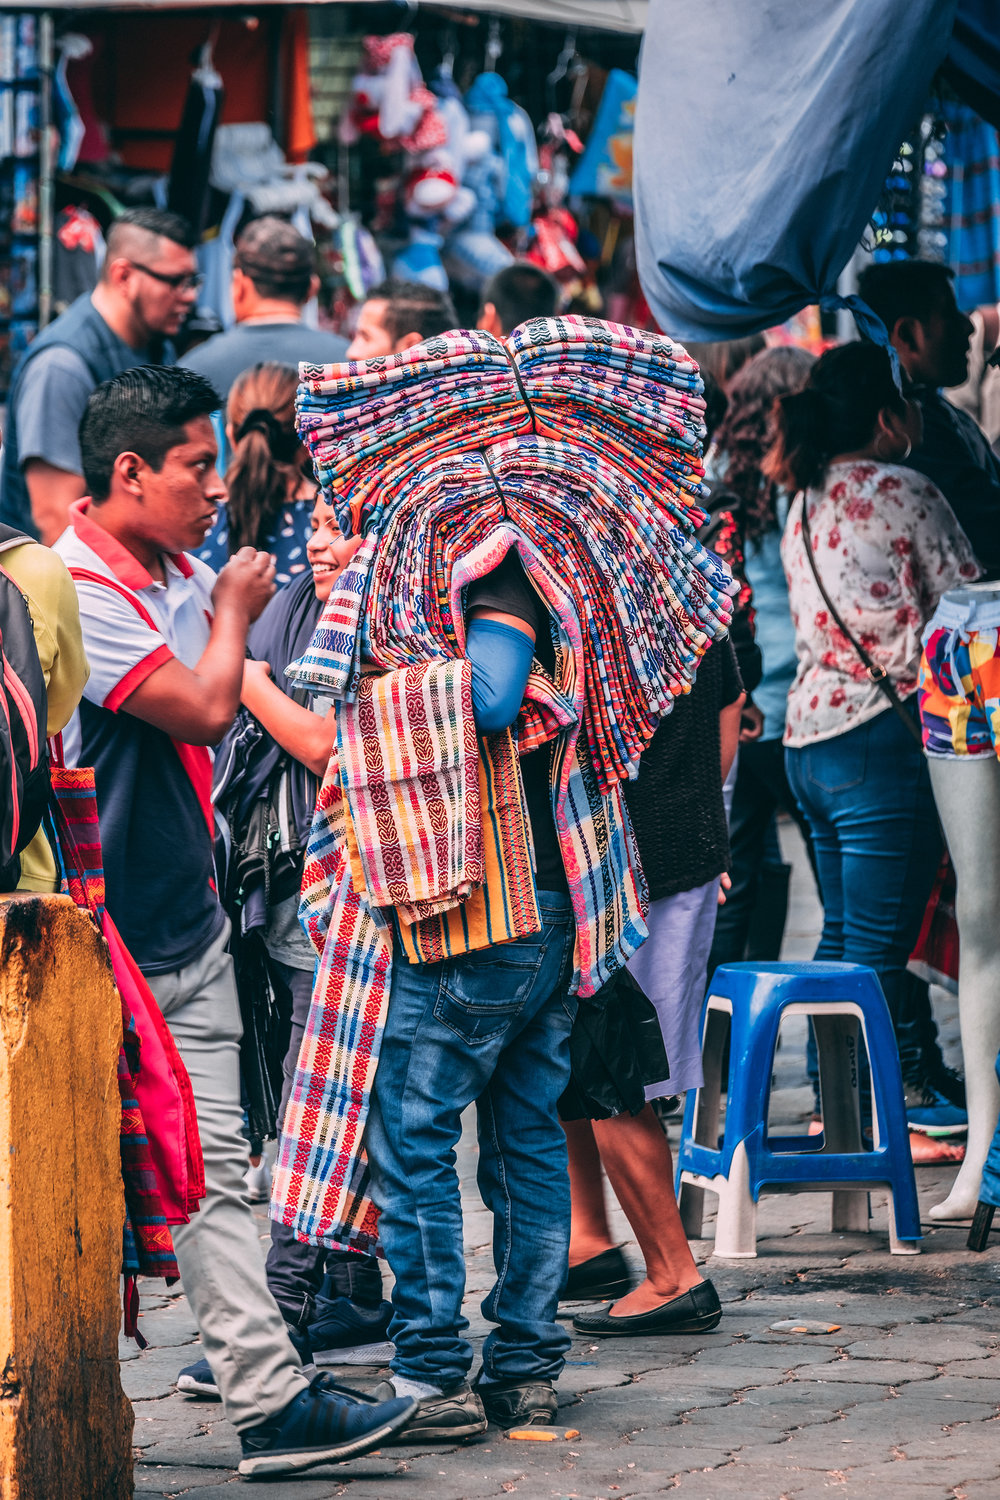 A blanket vendor ion the street in Antigua, Guatemala.